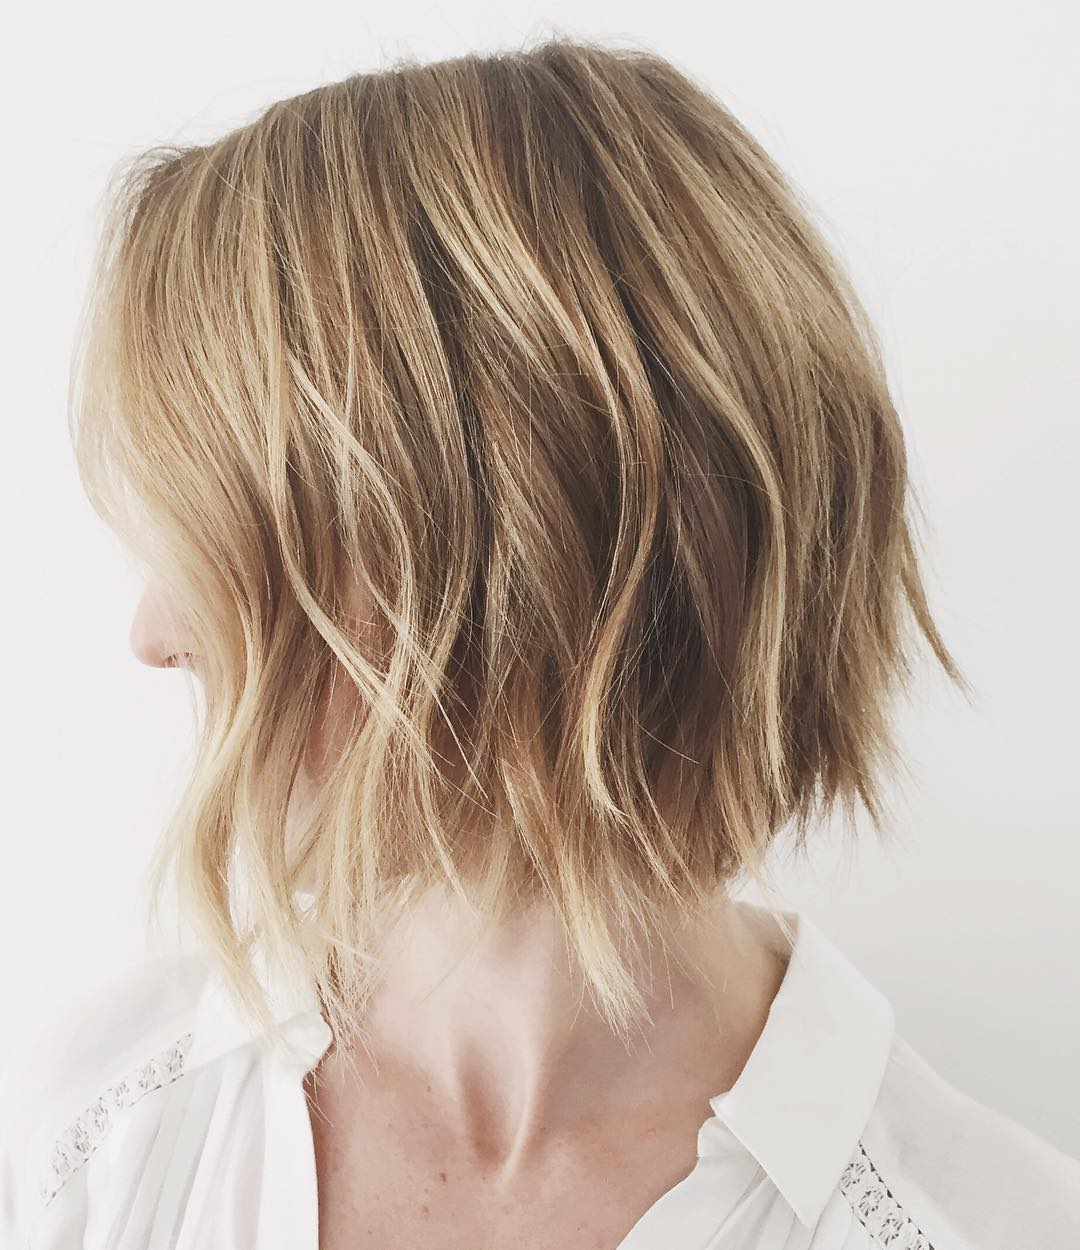 Best Short Bob Hairstyles Inspiration For Teens 2018 1